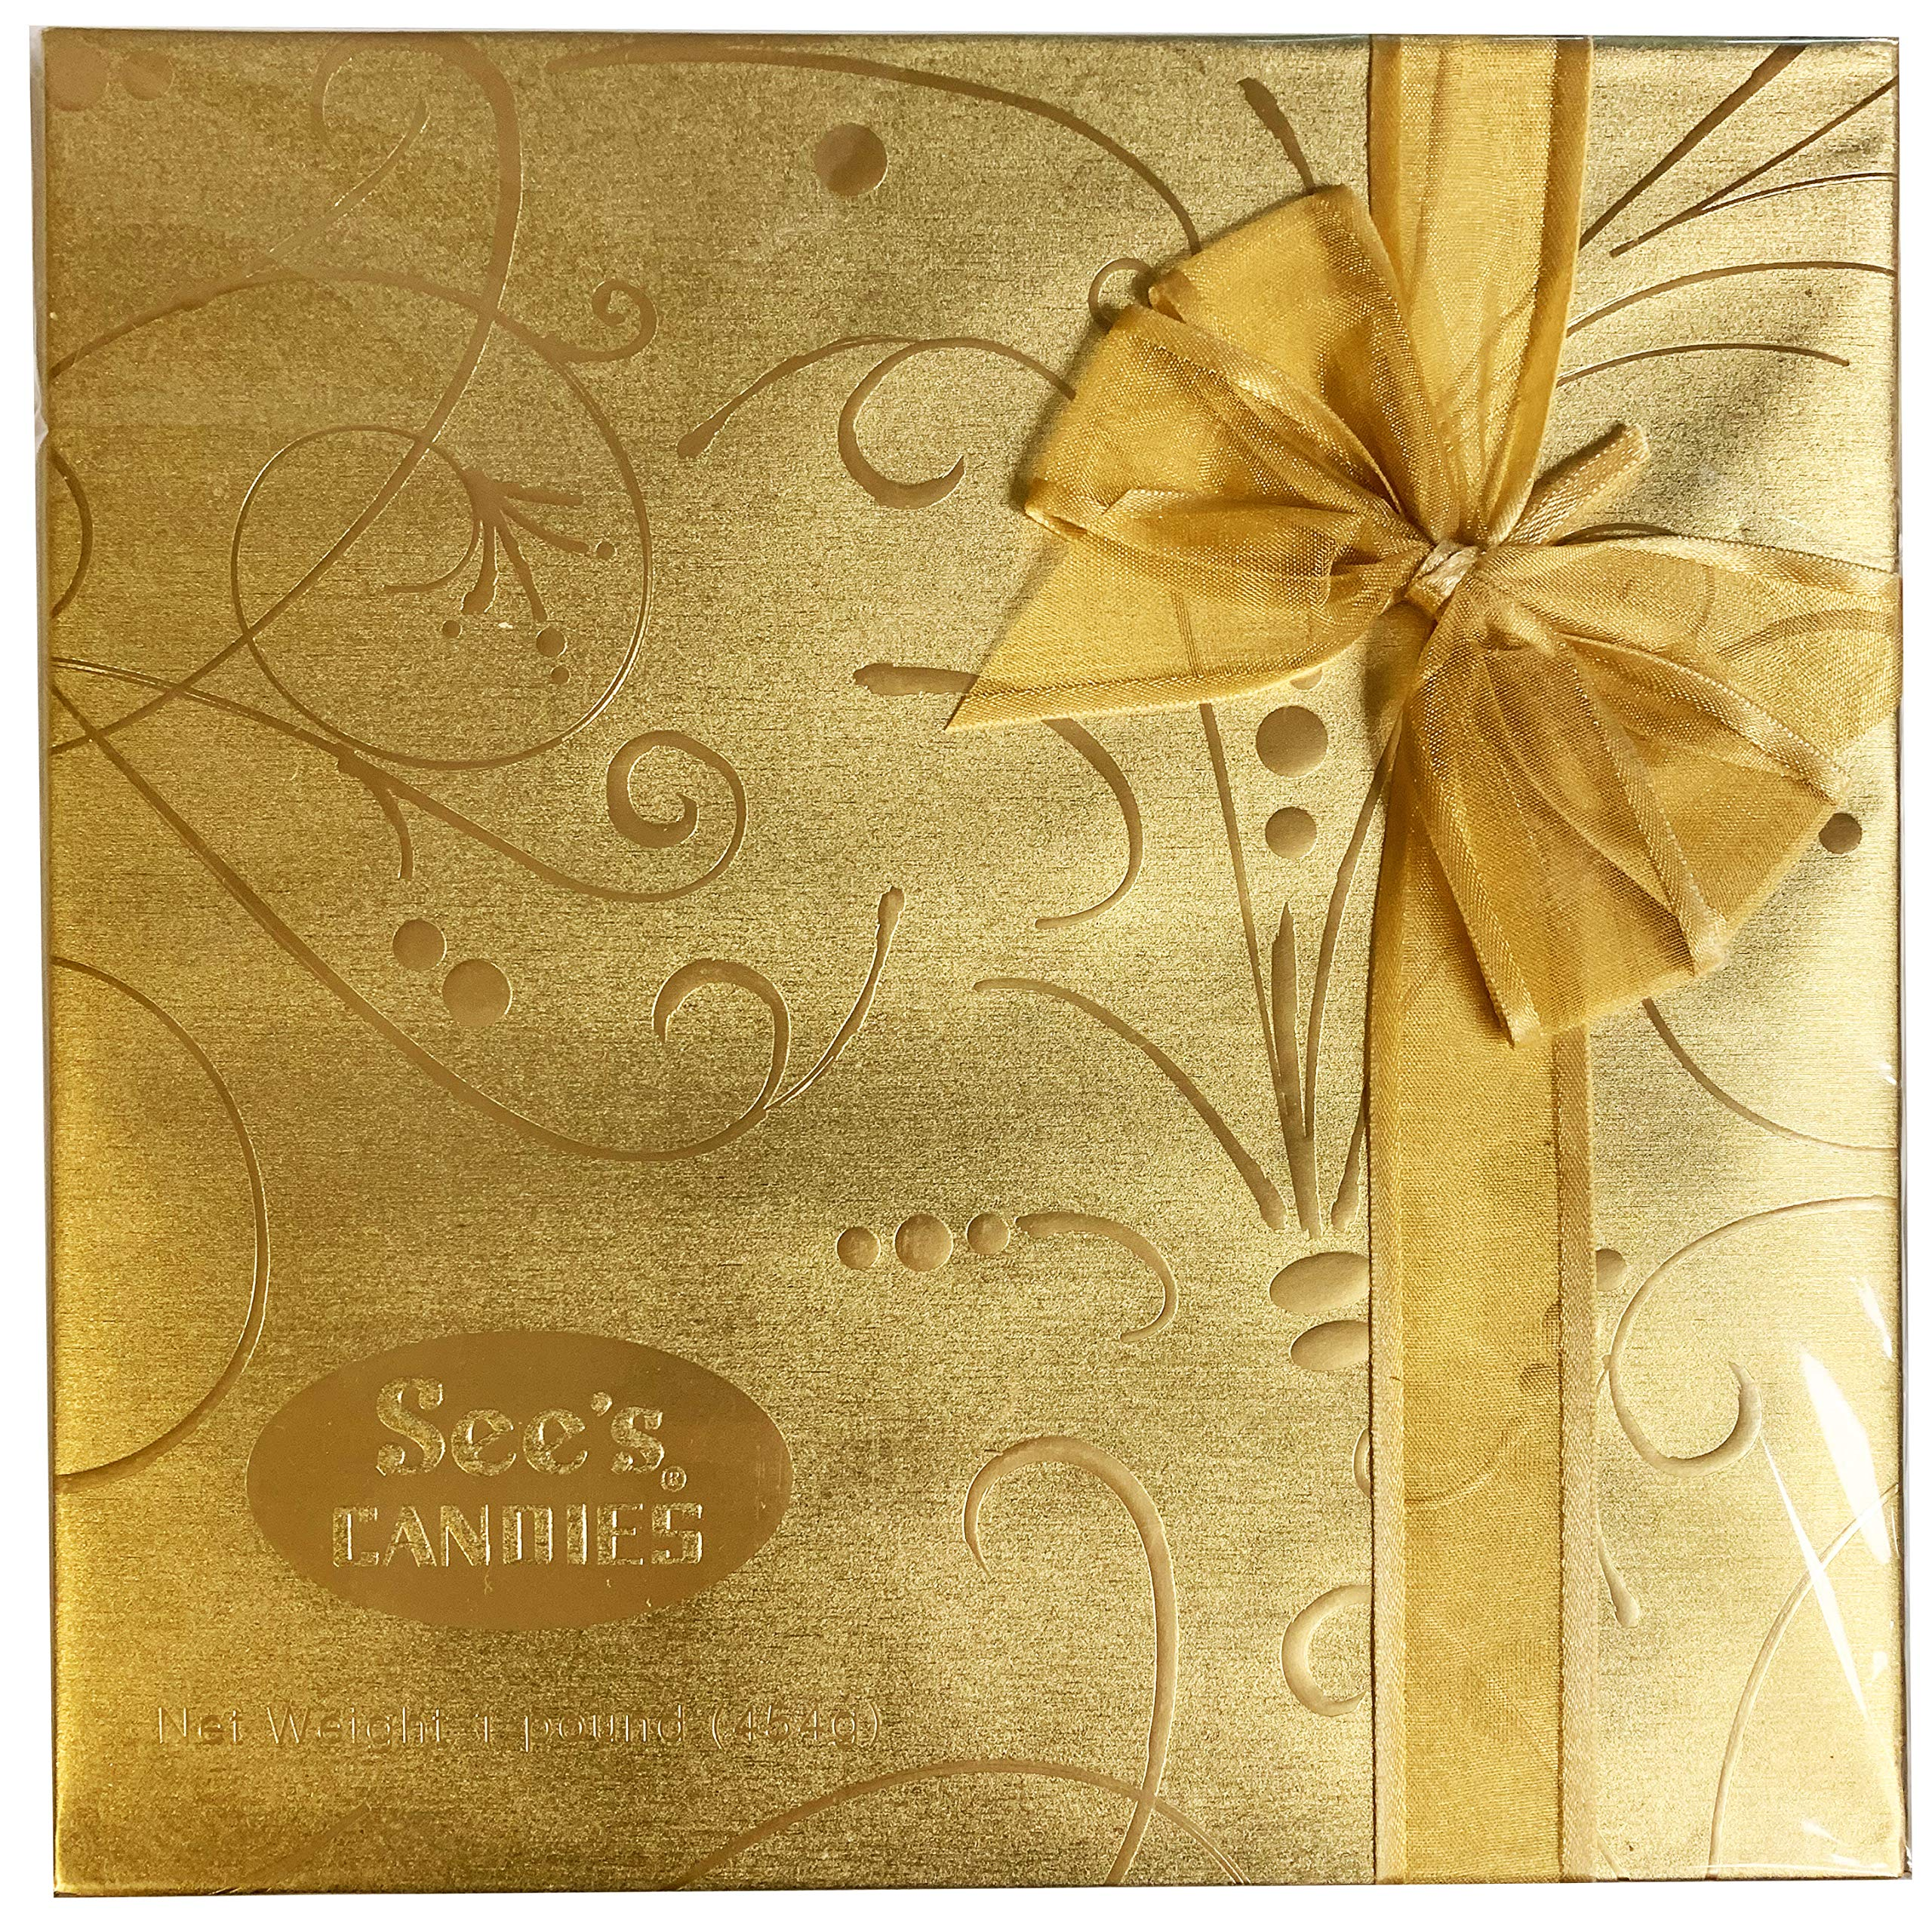 See's Candies 1 Lb Fancy Gold Gift Box of Assorted Chocolates by See's Candies